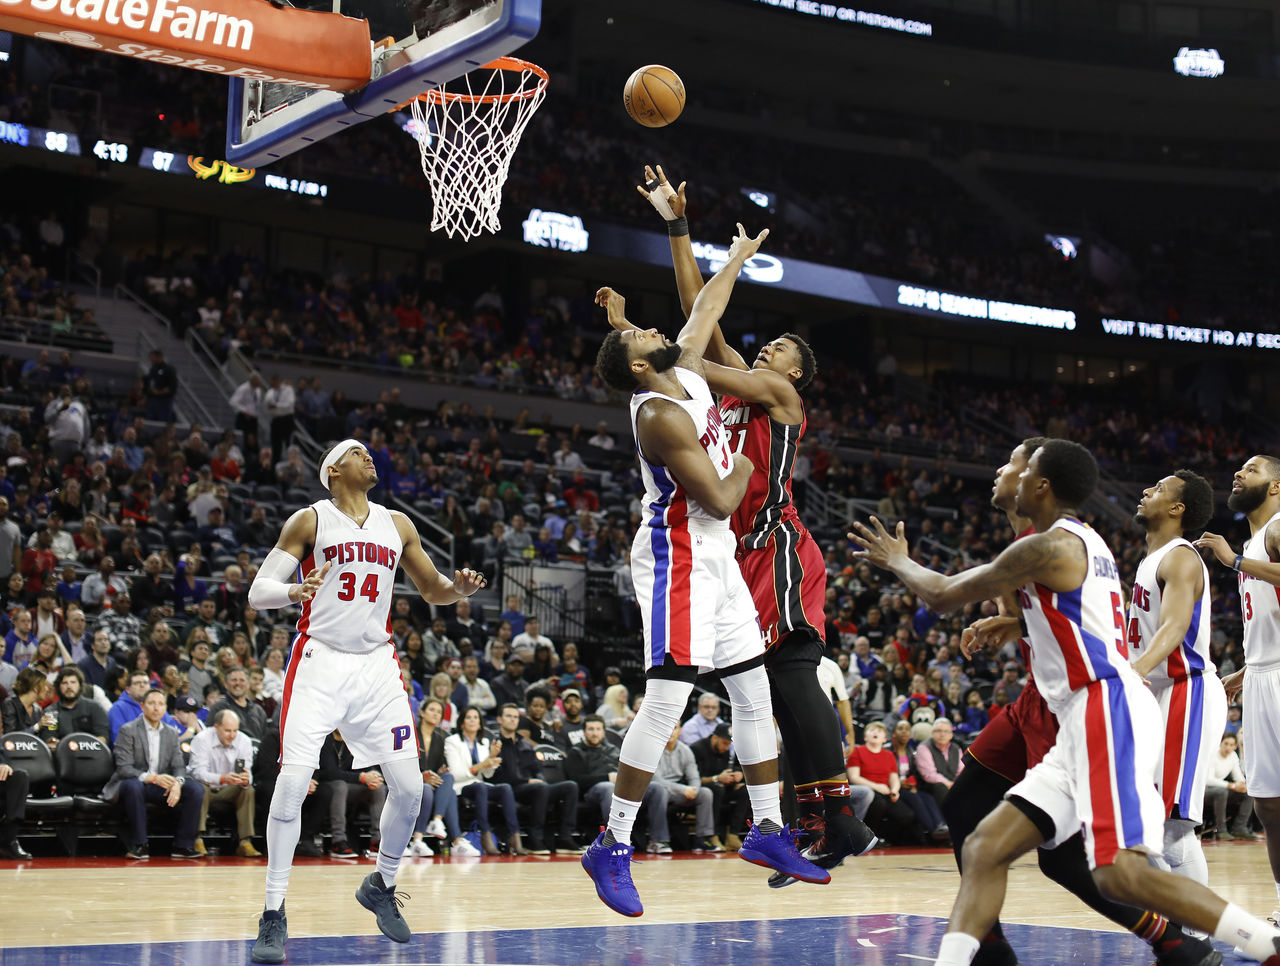 Cropped_2017-03-29t024031z_838974201_nocid_rtrmadp_3_nba-miami-heat-at-detroit-pistons